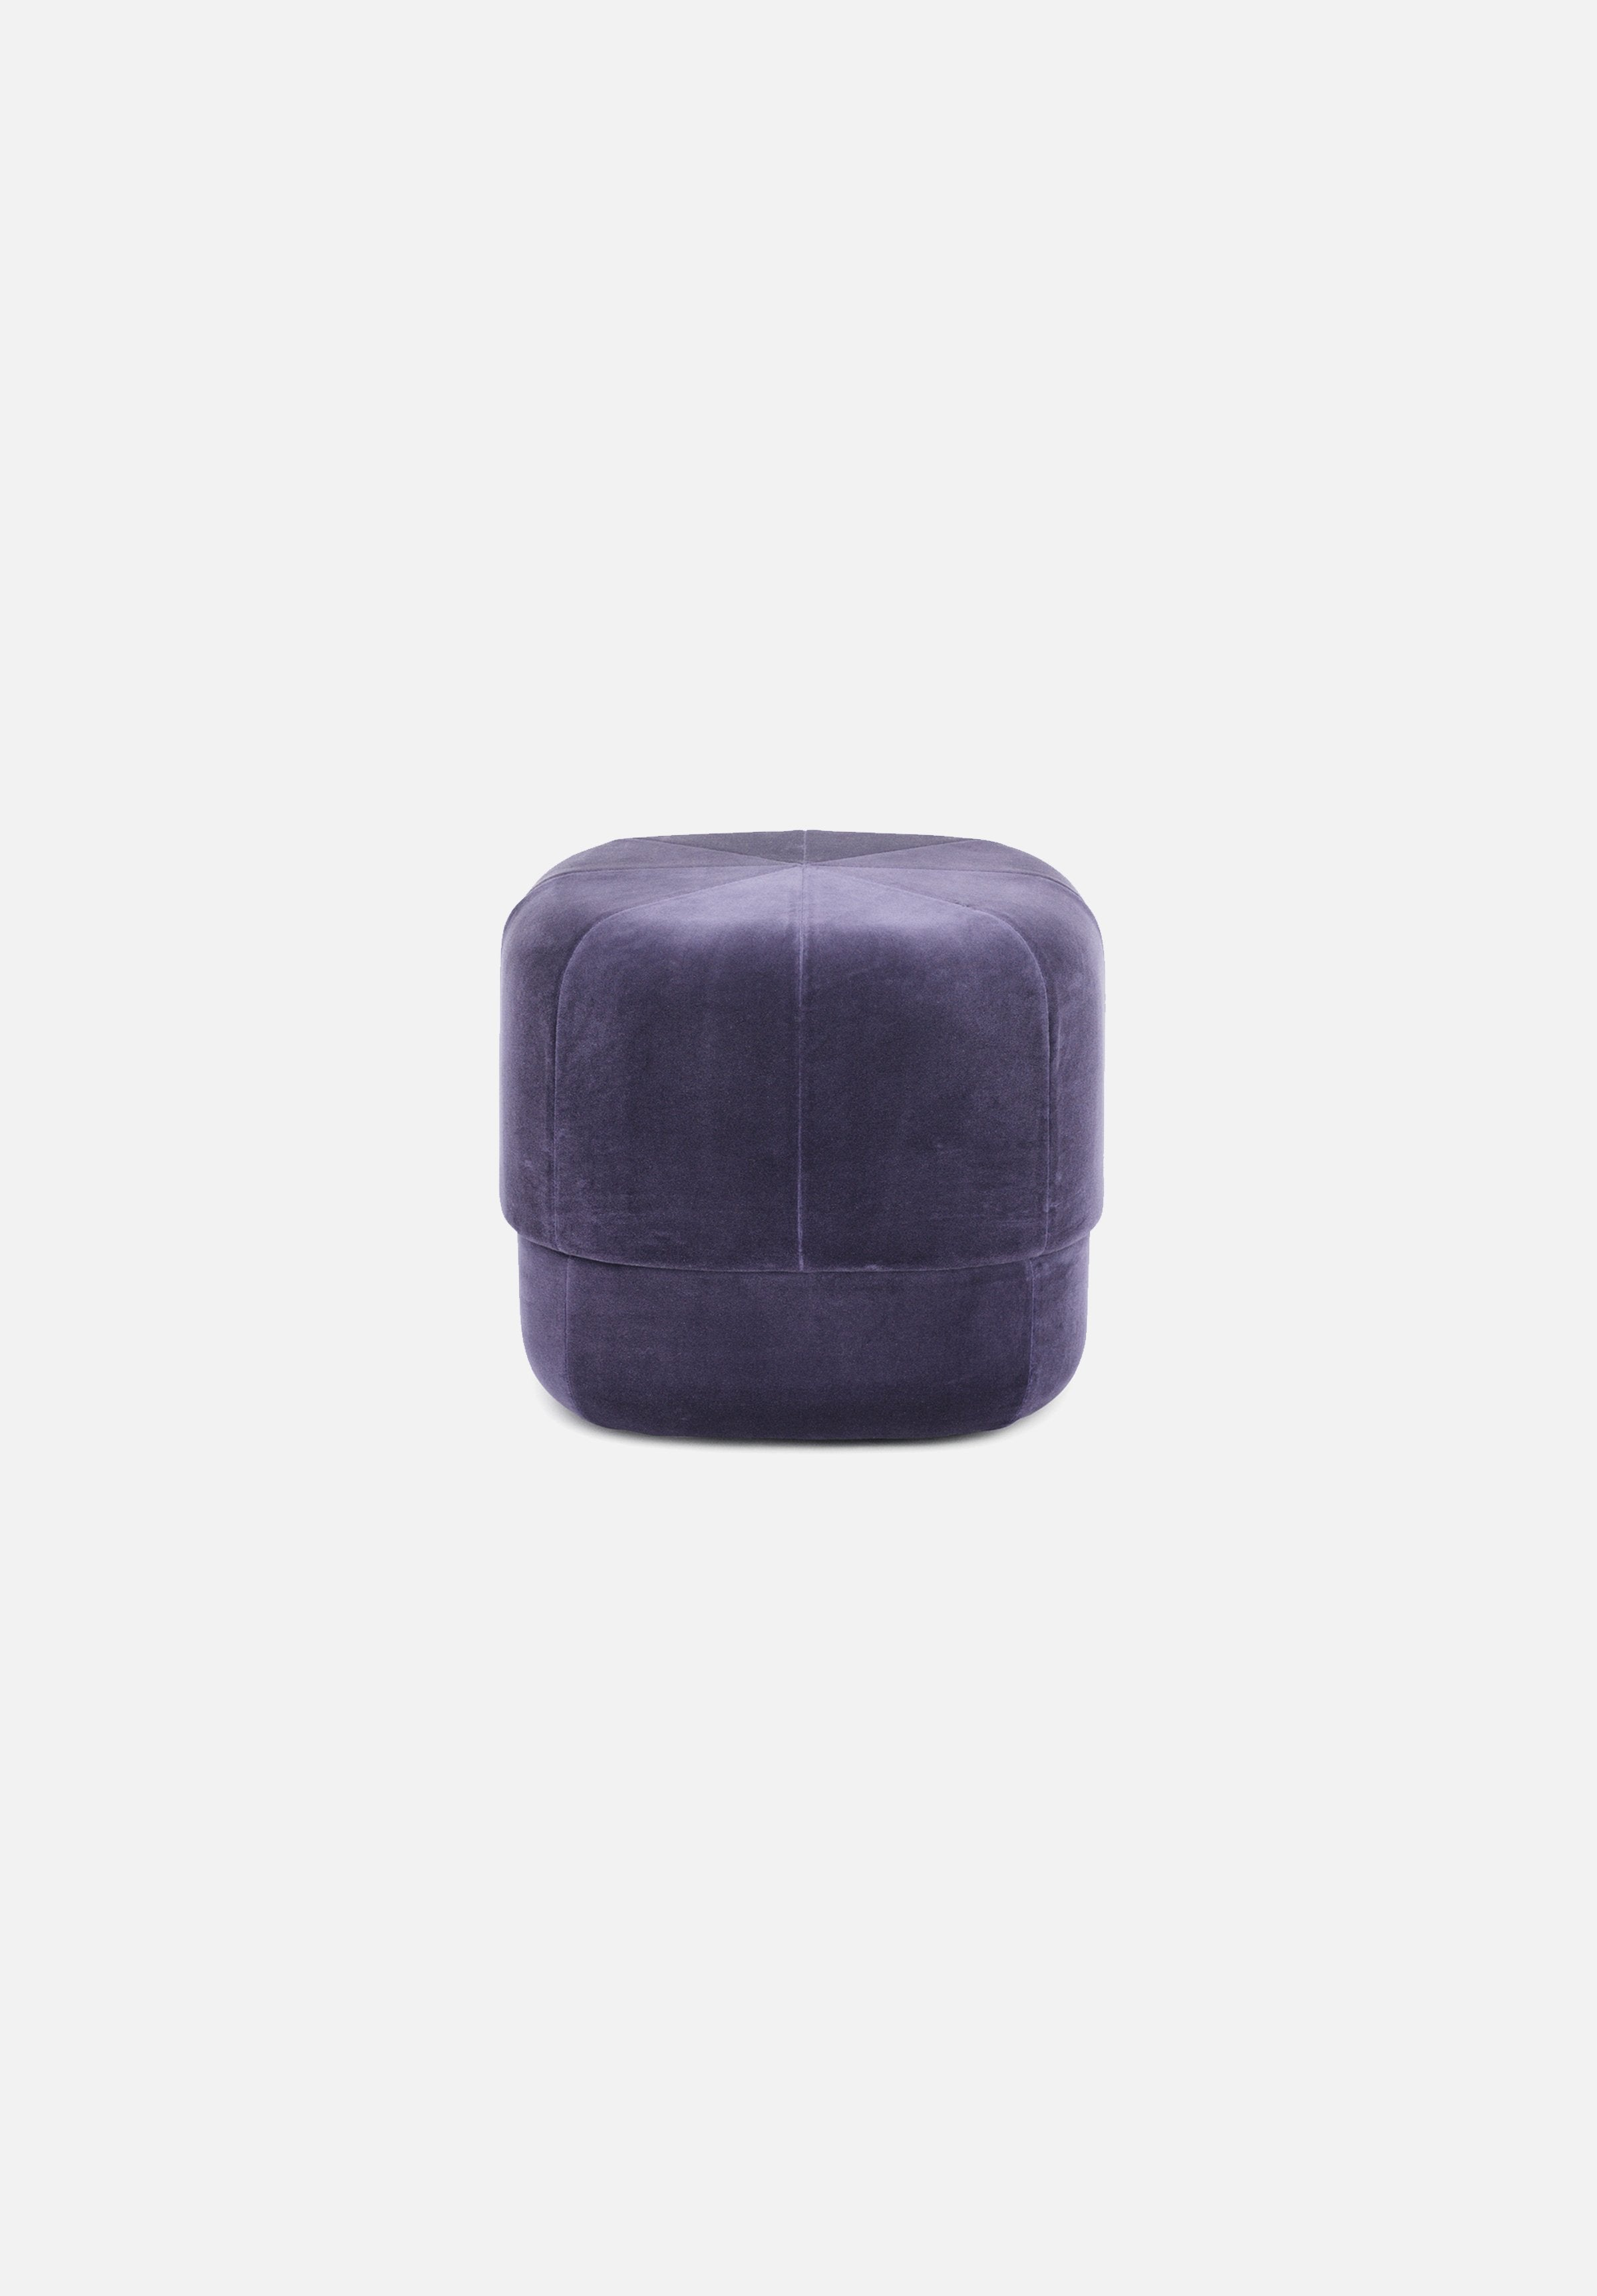 Circus Pouf — Small-Simon Legald-Normann Copenhagen-Purple-Average